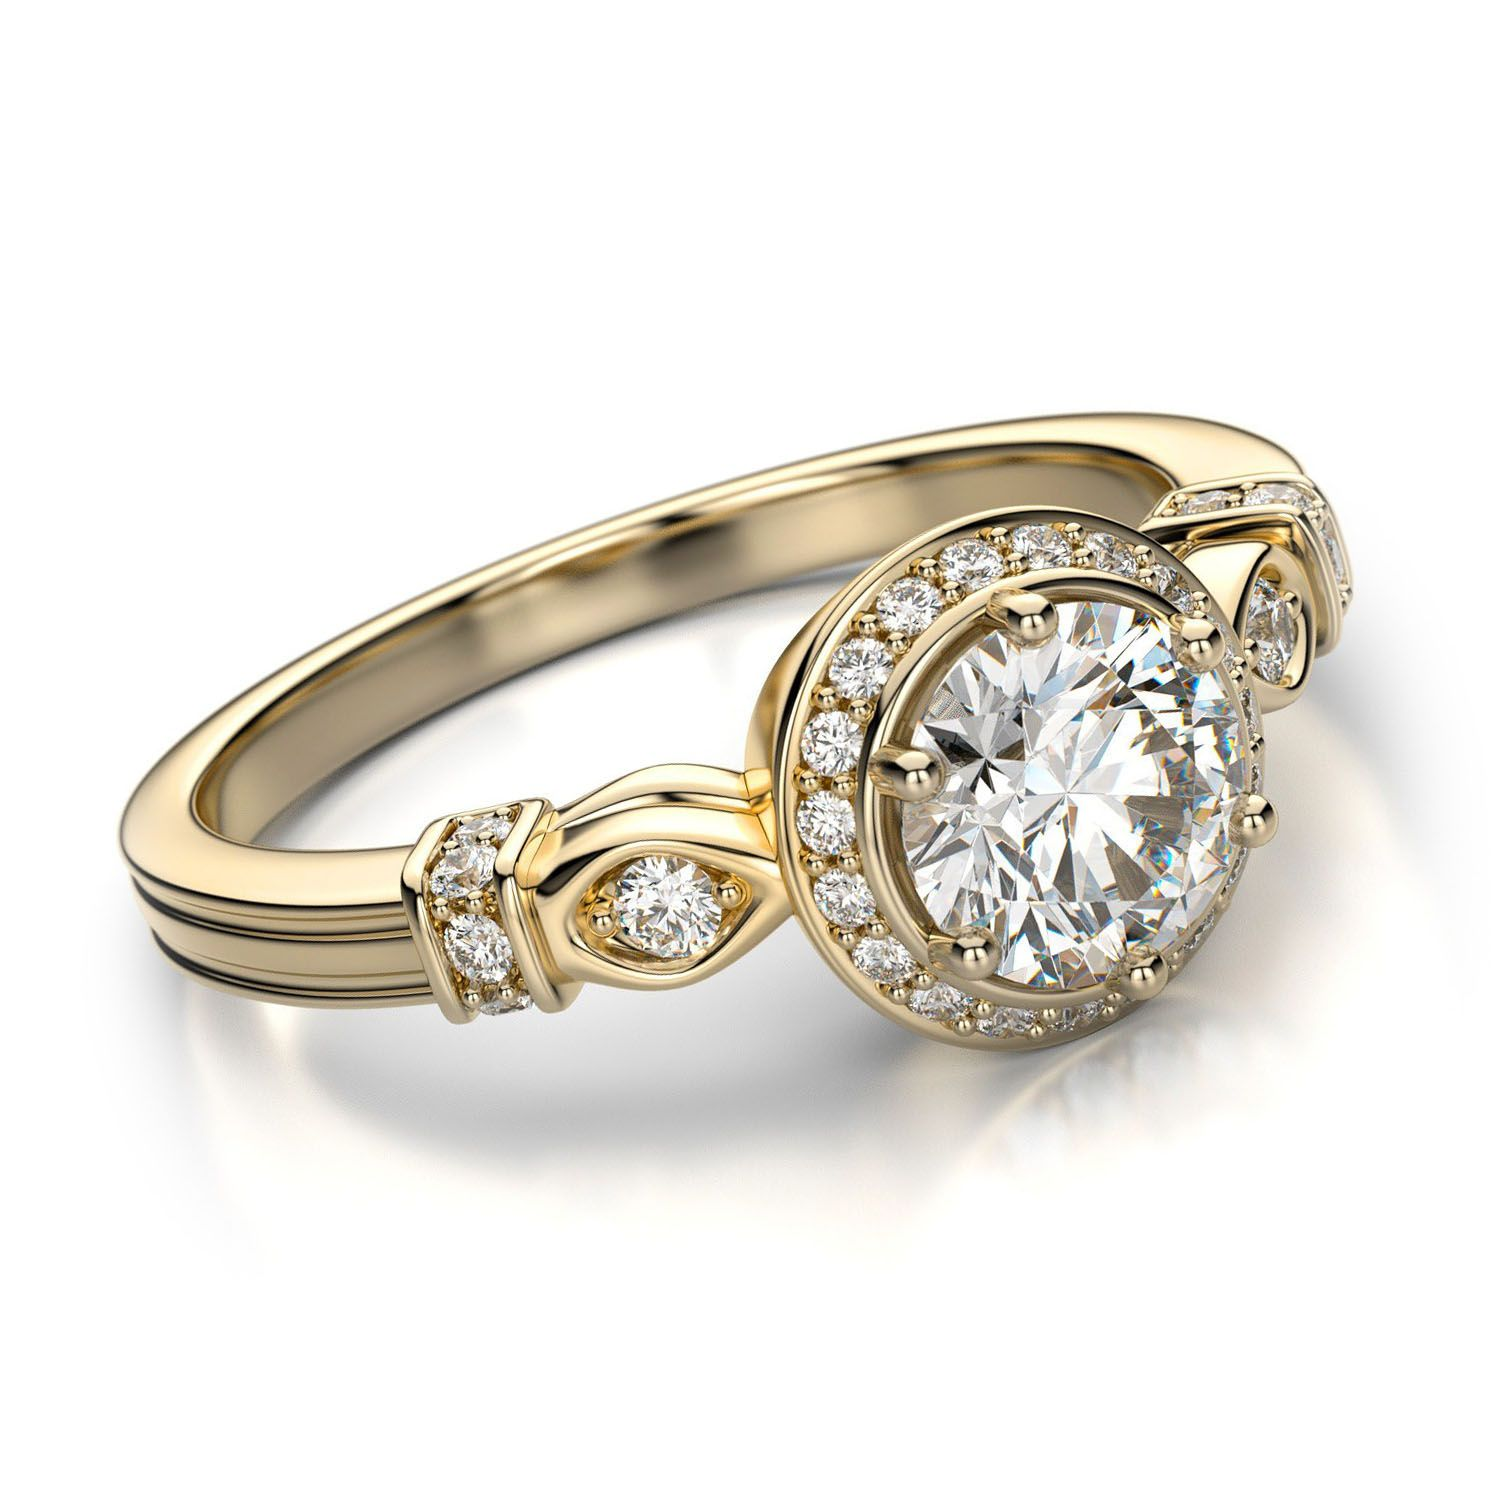 Vintage diamond engagement rings for women beautiful for Wedding engagement rings for women